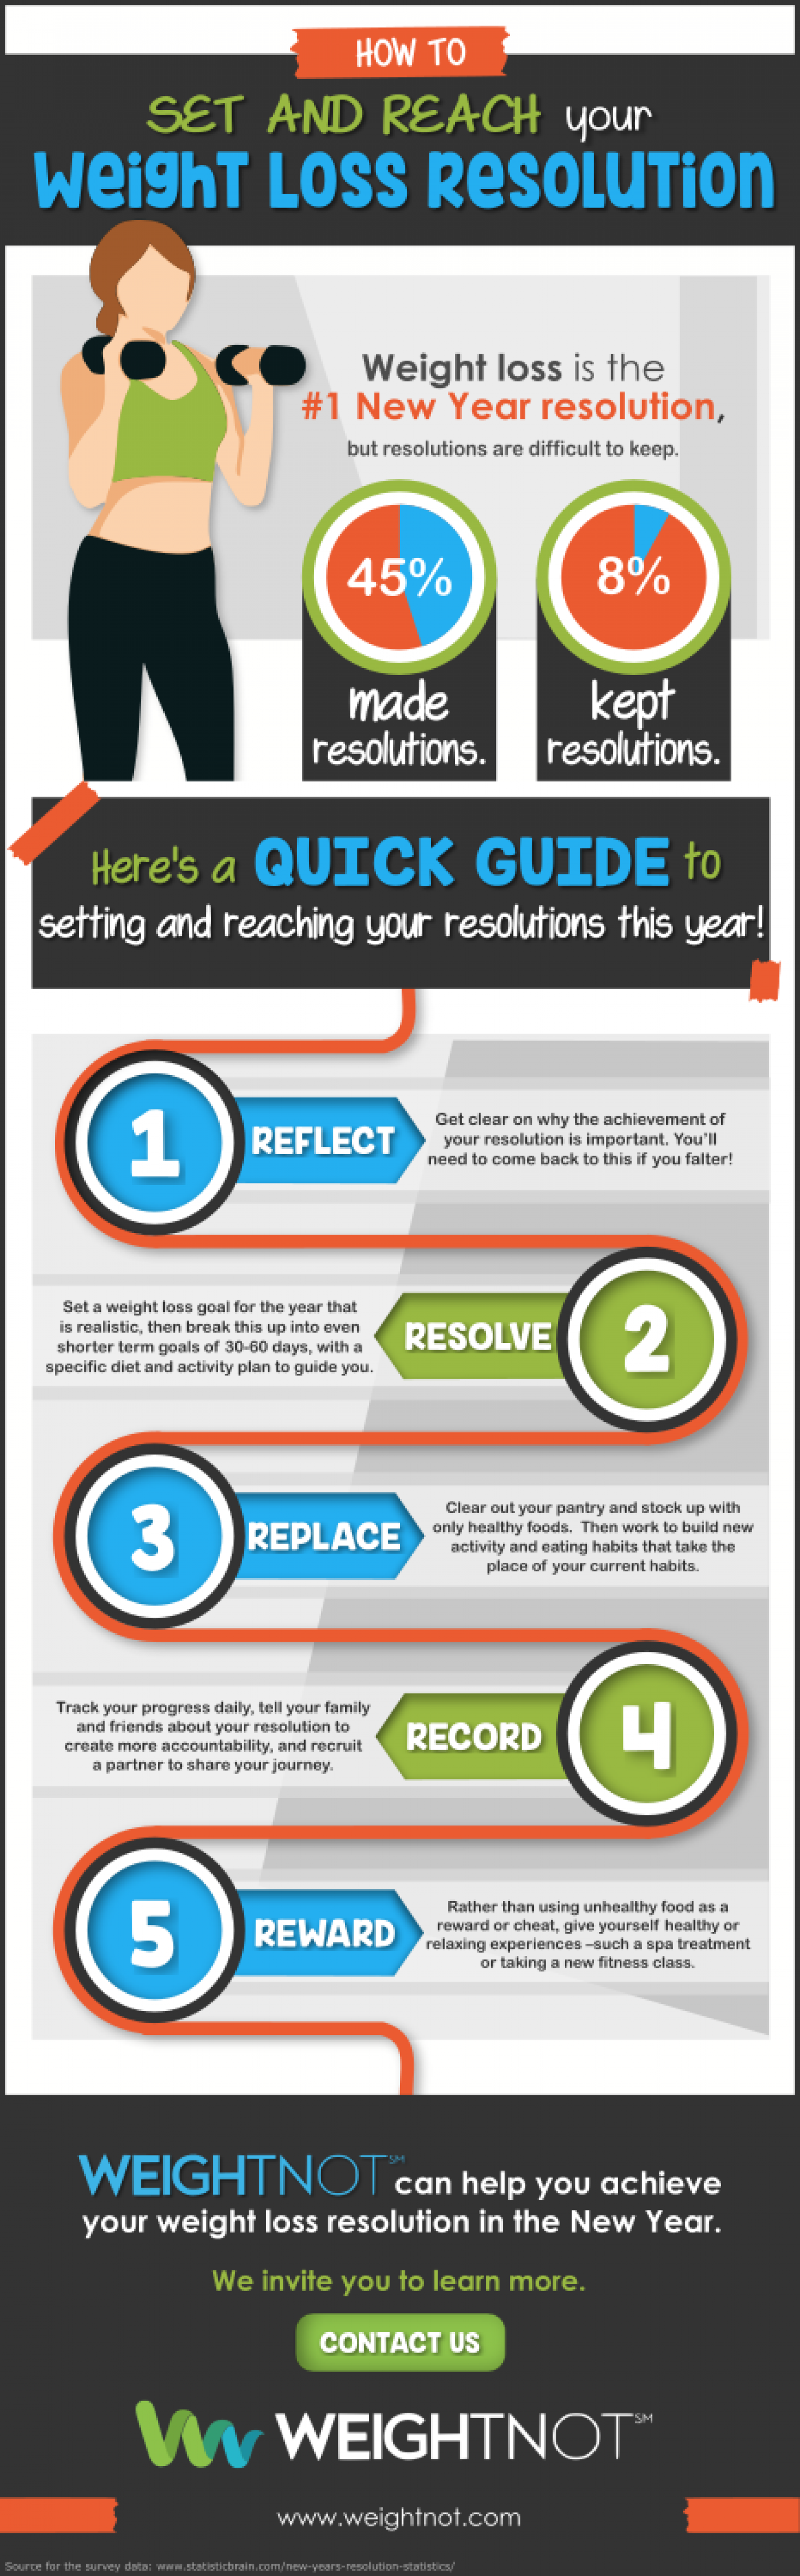 How to Set and Reach Your Weight Loss Resolution Infographic